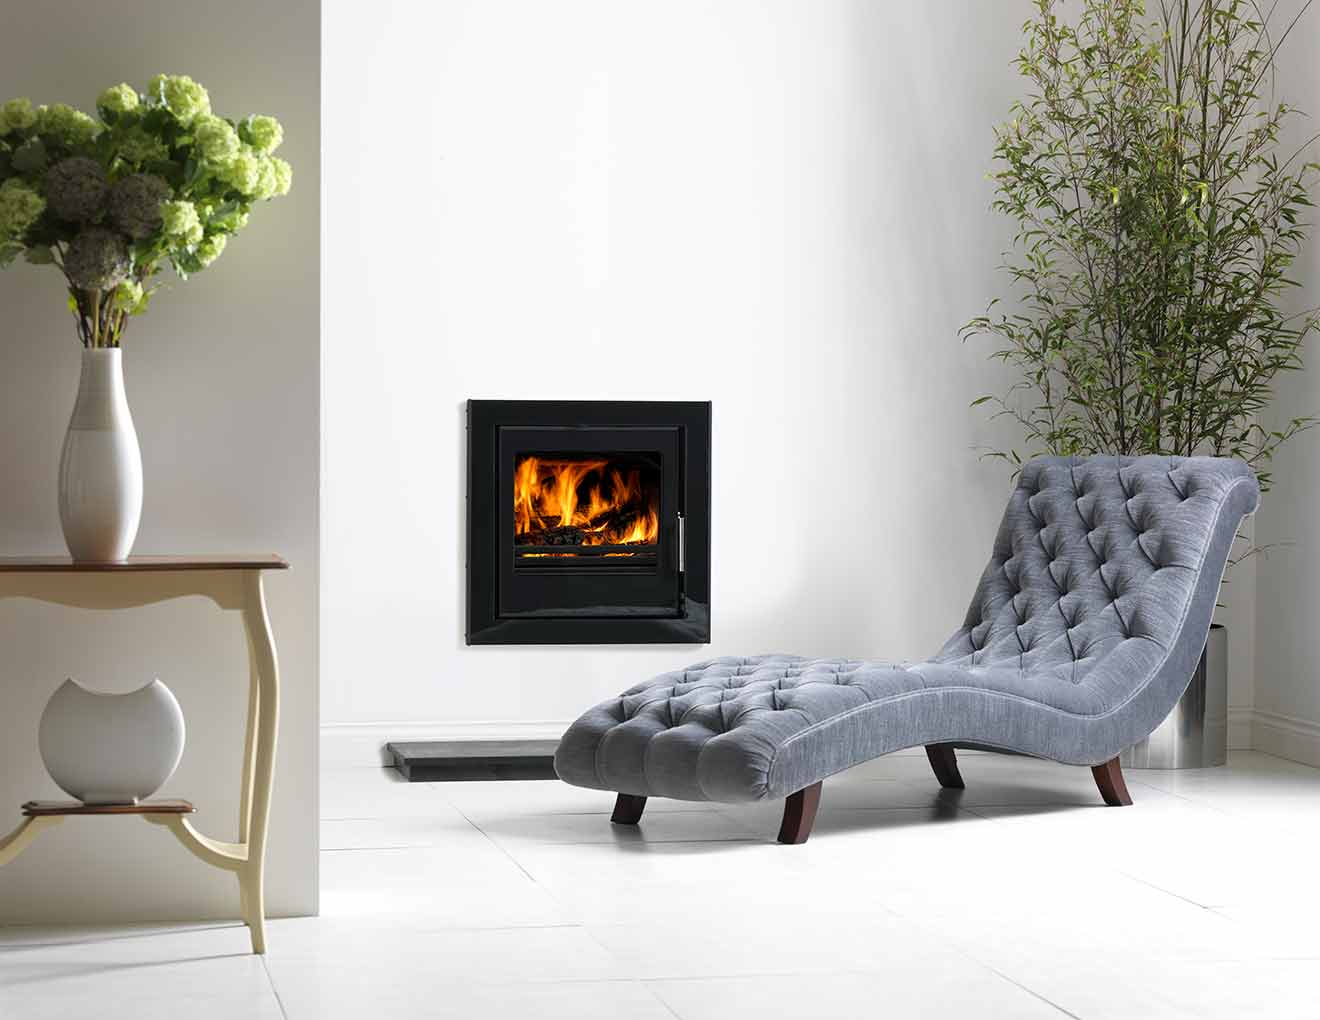 9 KW Vitae Cassette In Fireplace Image